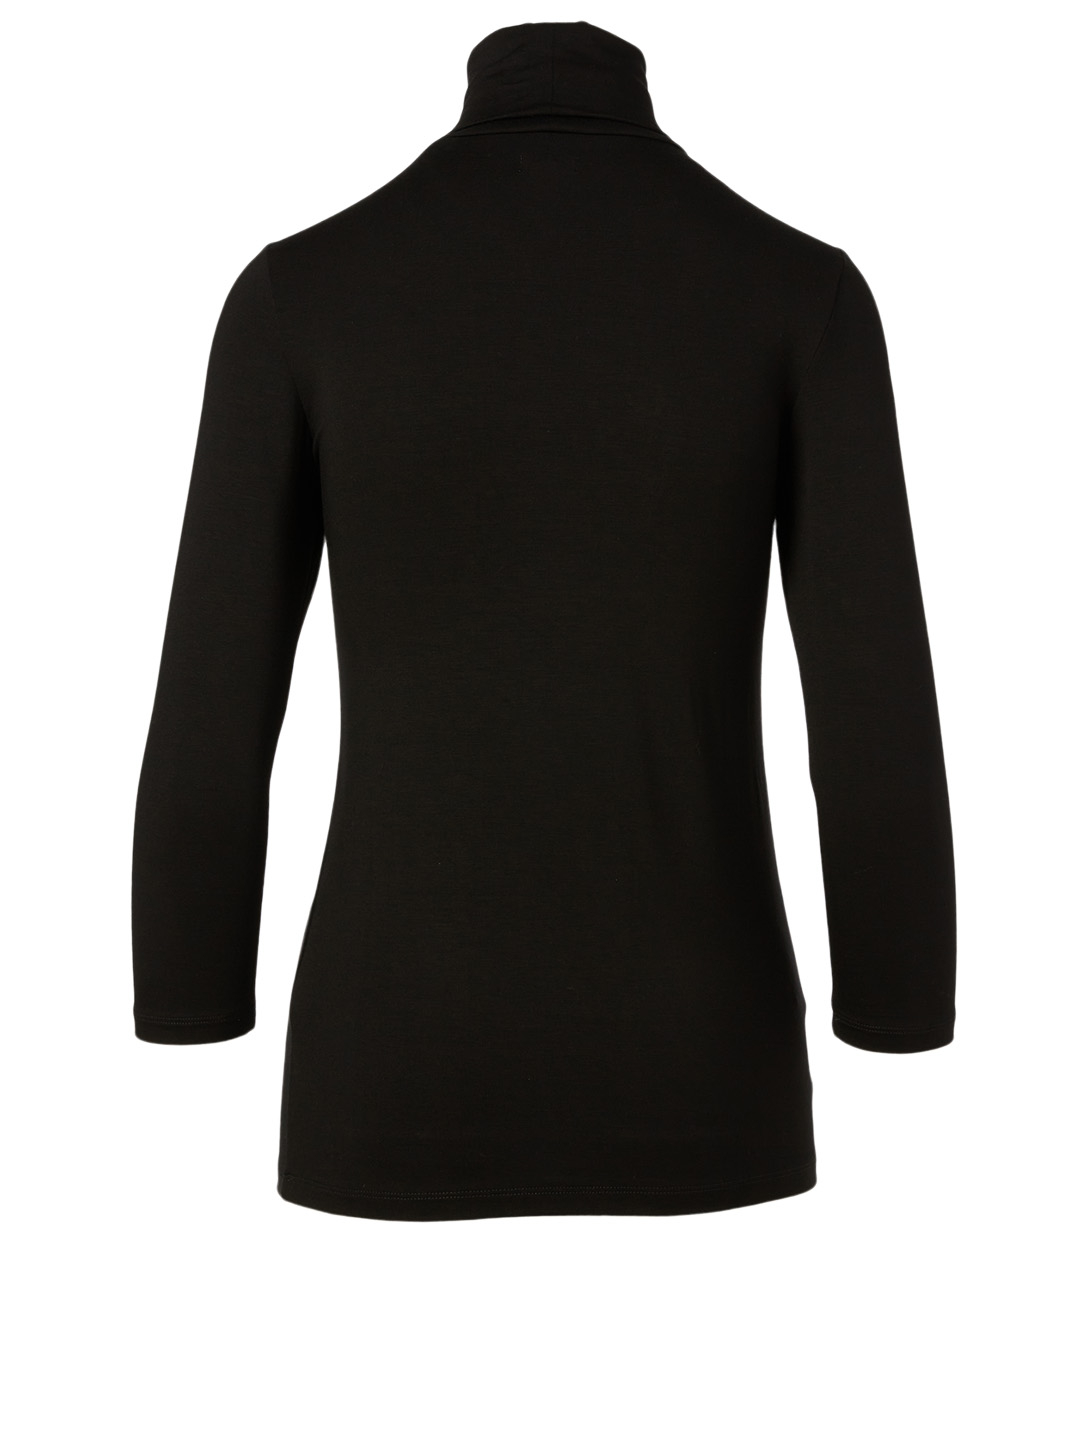 L'AGENCE Aja Turtleneck Top Women's Black